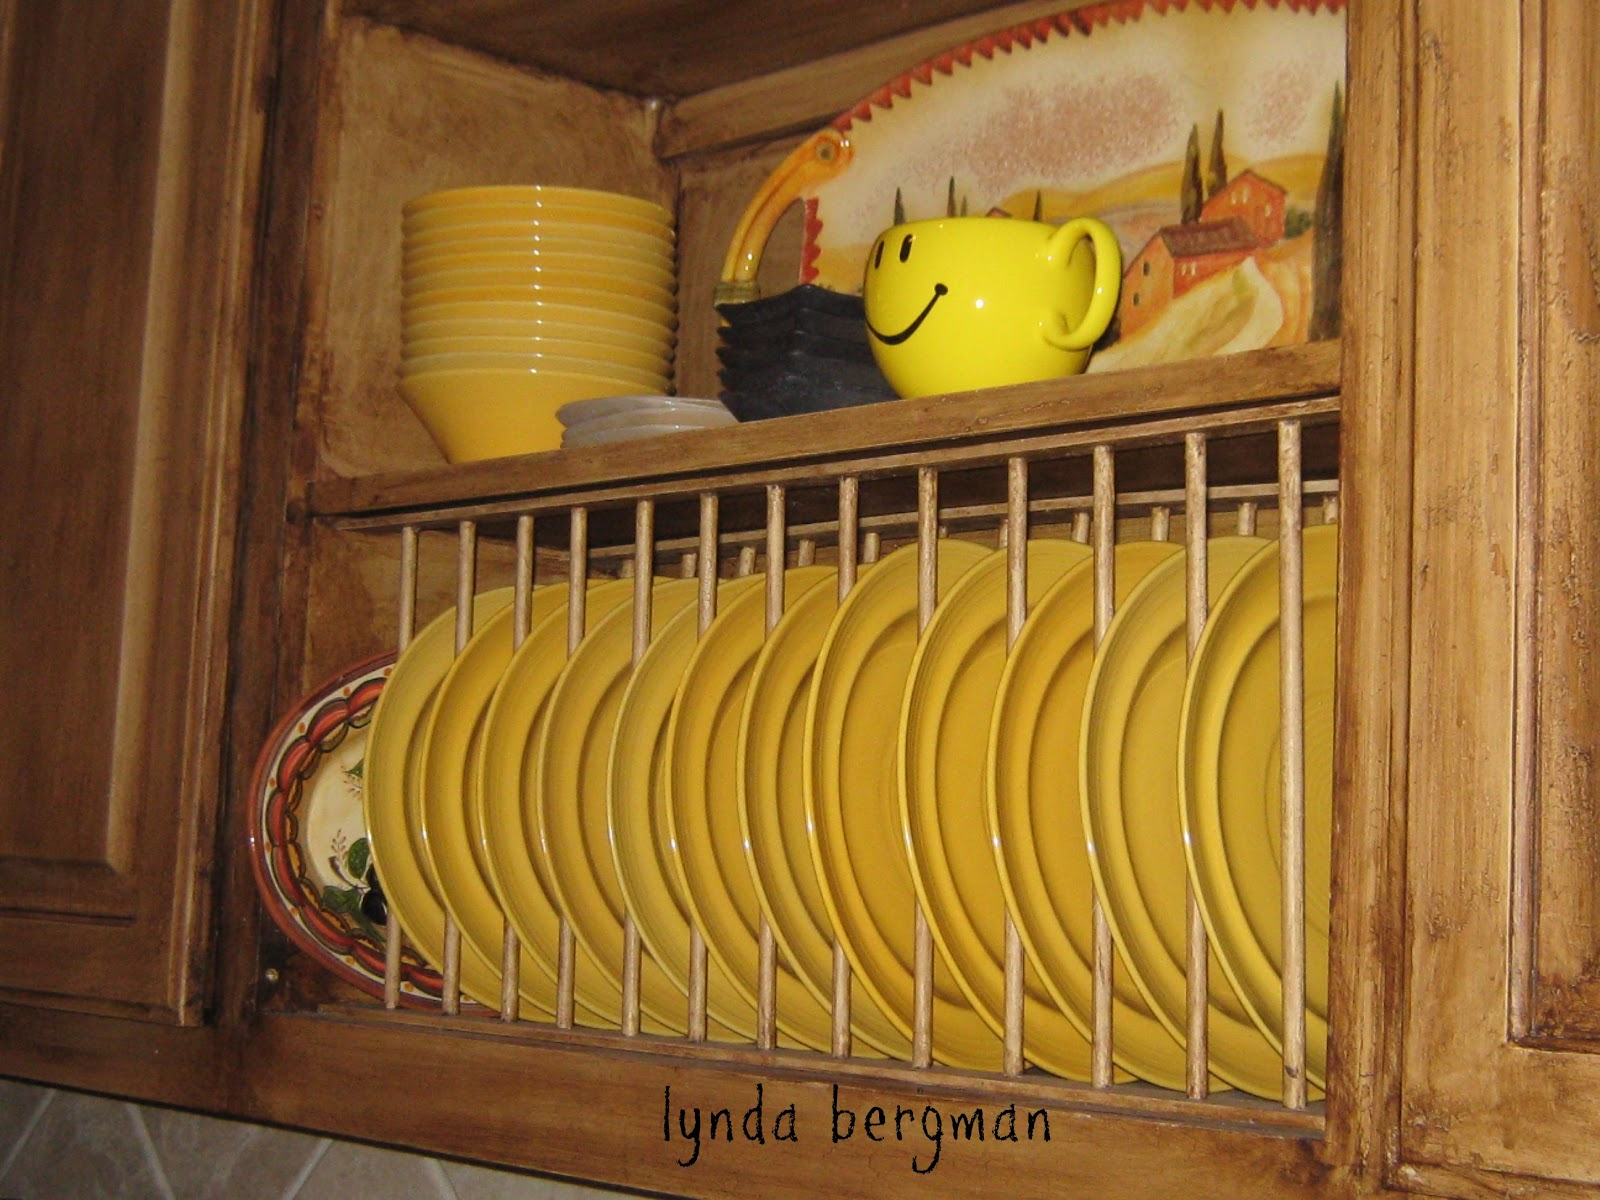 LYNDA BERGMAN DECORATIVE ARTISAN: HOW TO BUILD & INSTALL A PLATE RACK FOR A CABINET -TUTORIAL